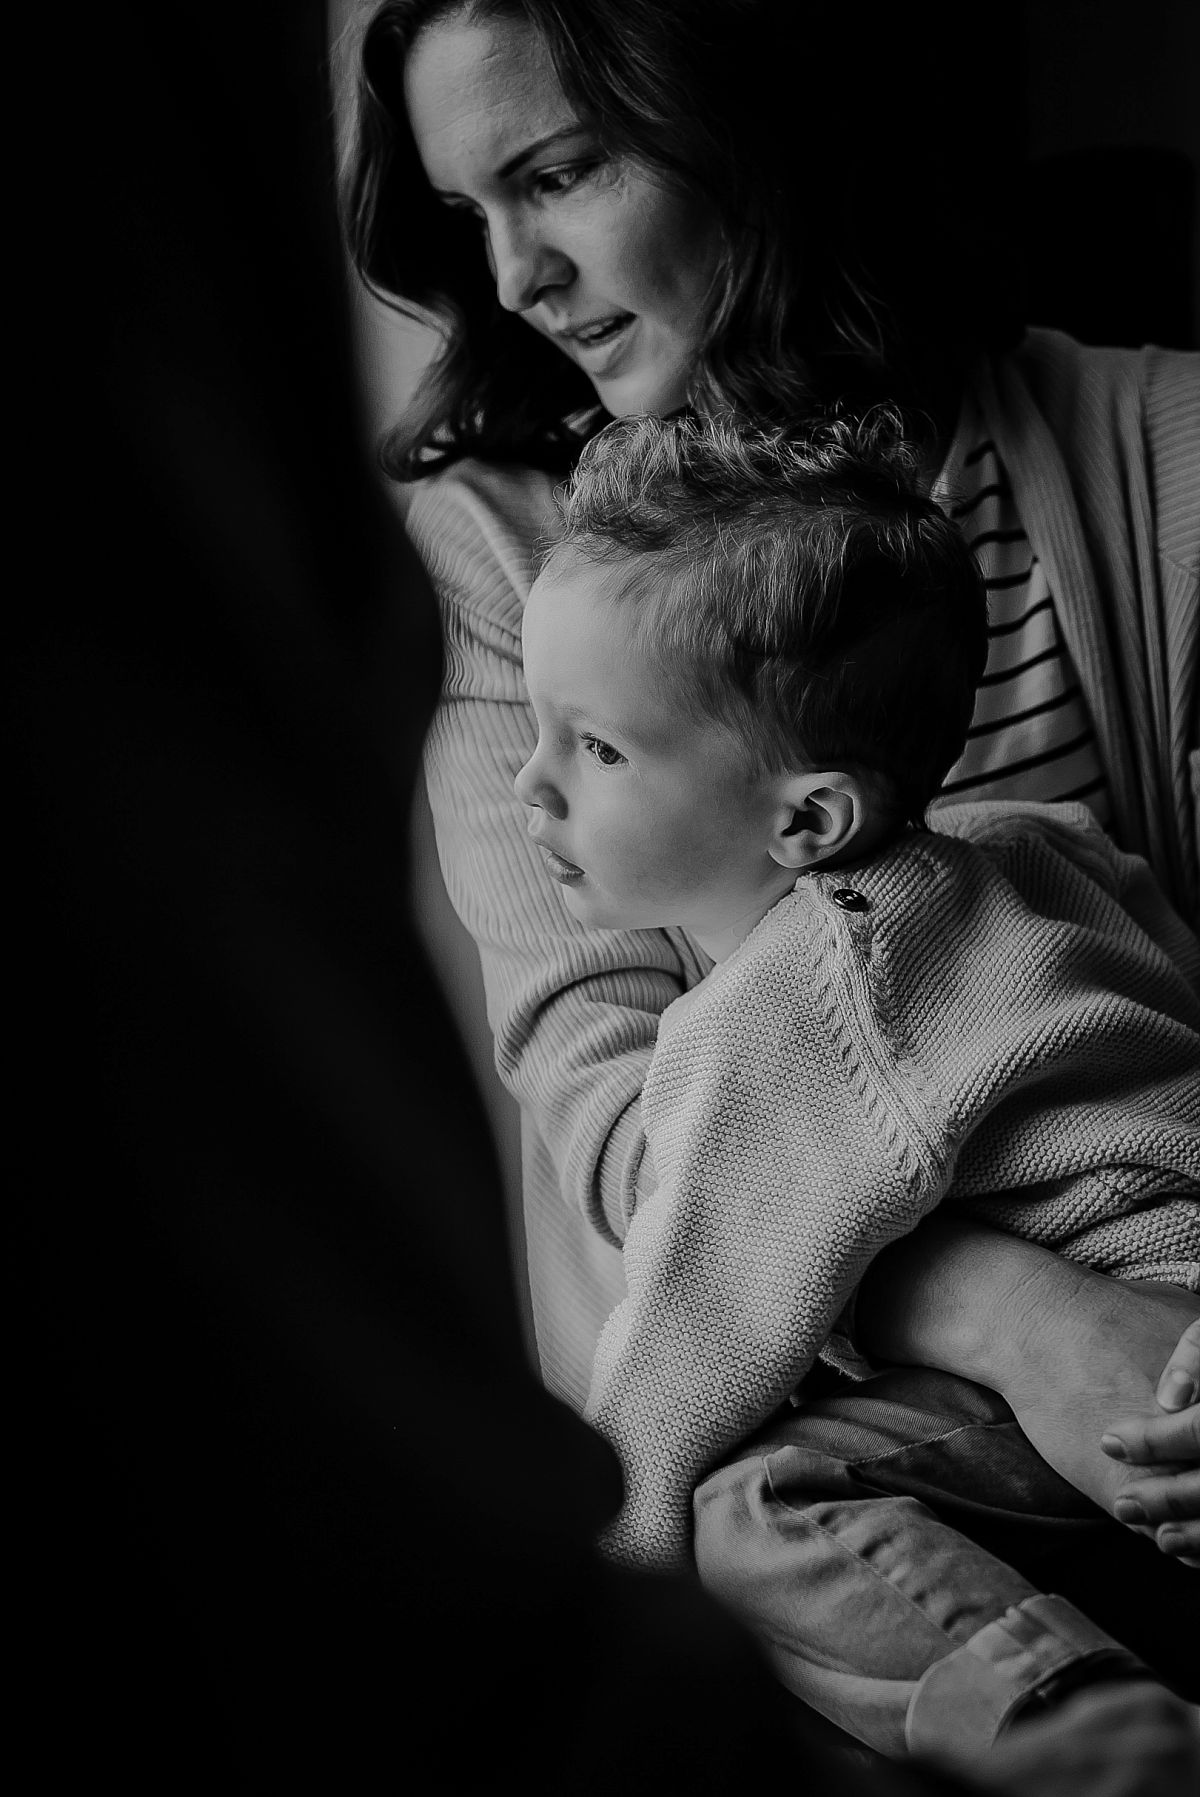 portrait of mom sitting on son's lap looking out of window. photographed by phtographer krystil mcdowall